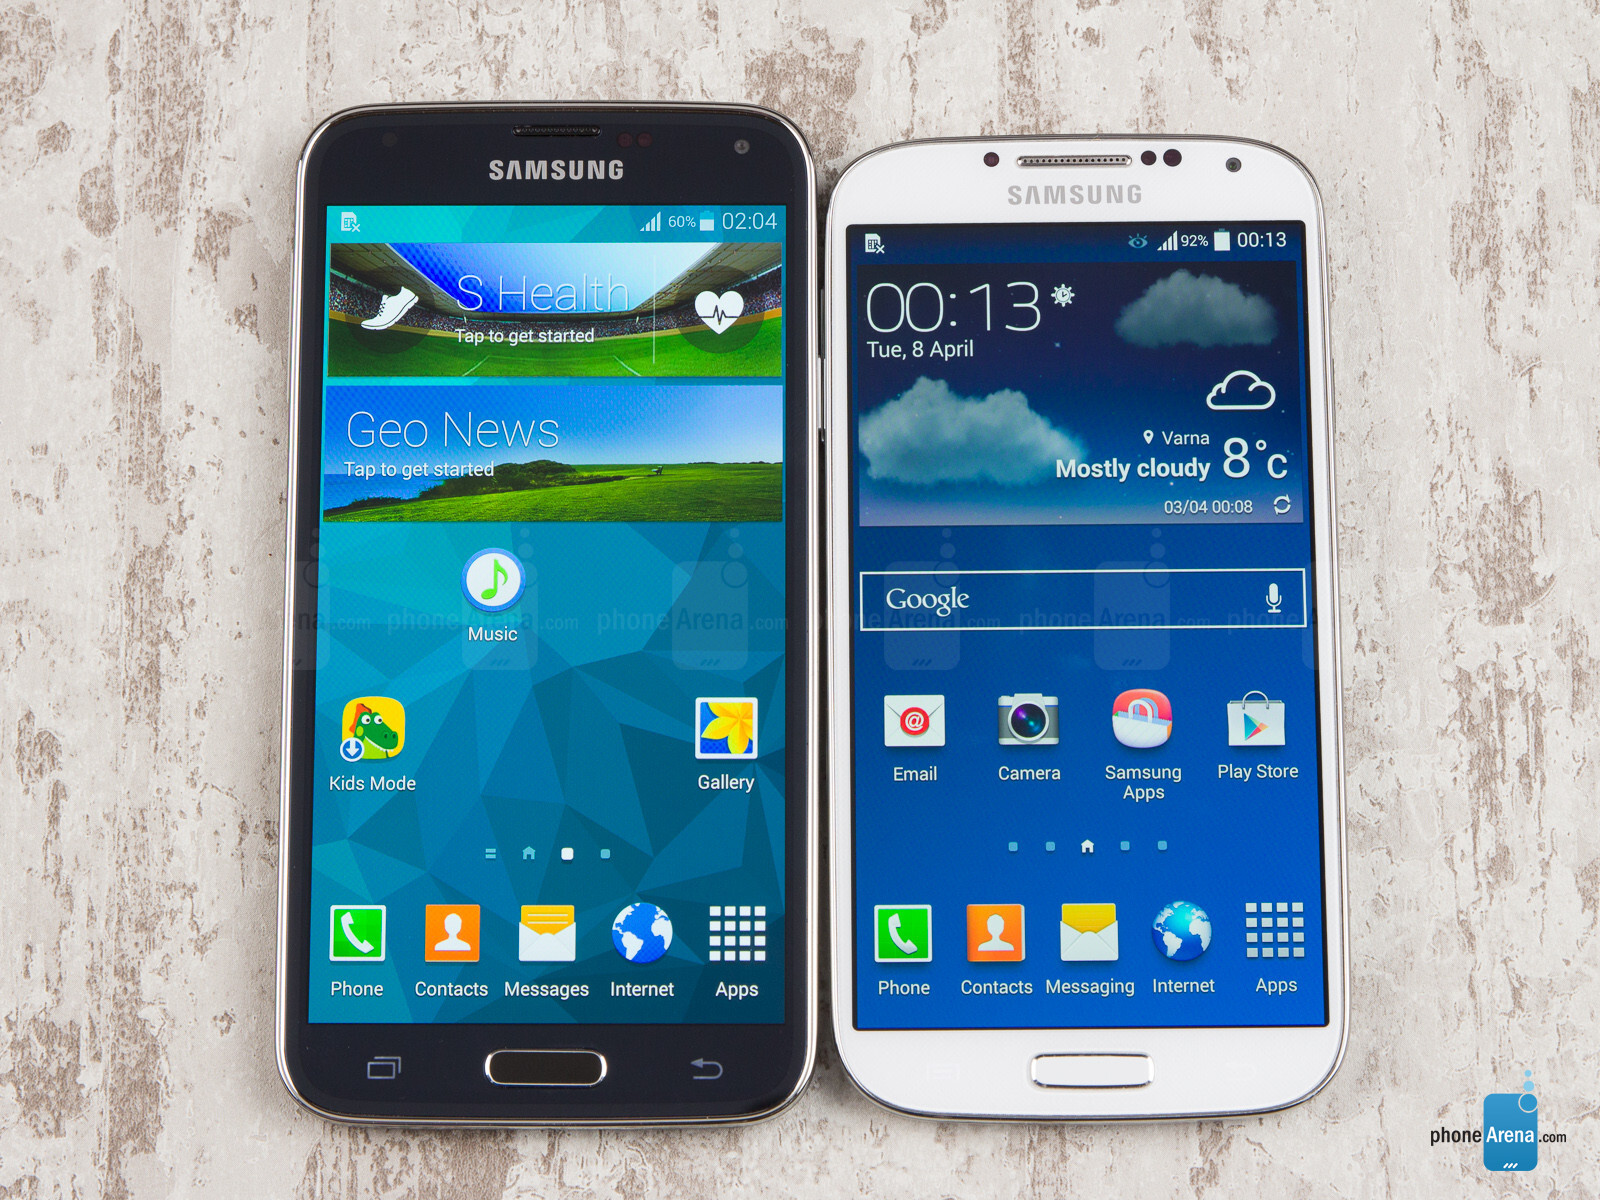 Samsung Galaxy S4: characteristics of the phone, reviews and photos